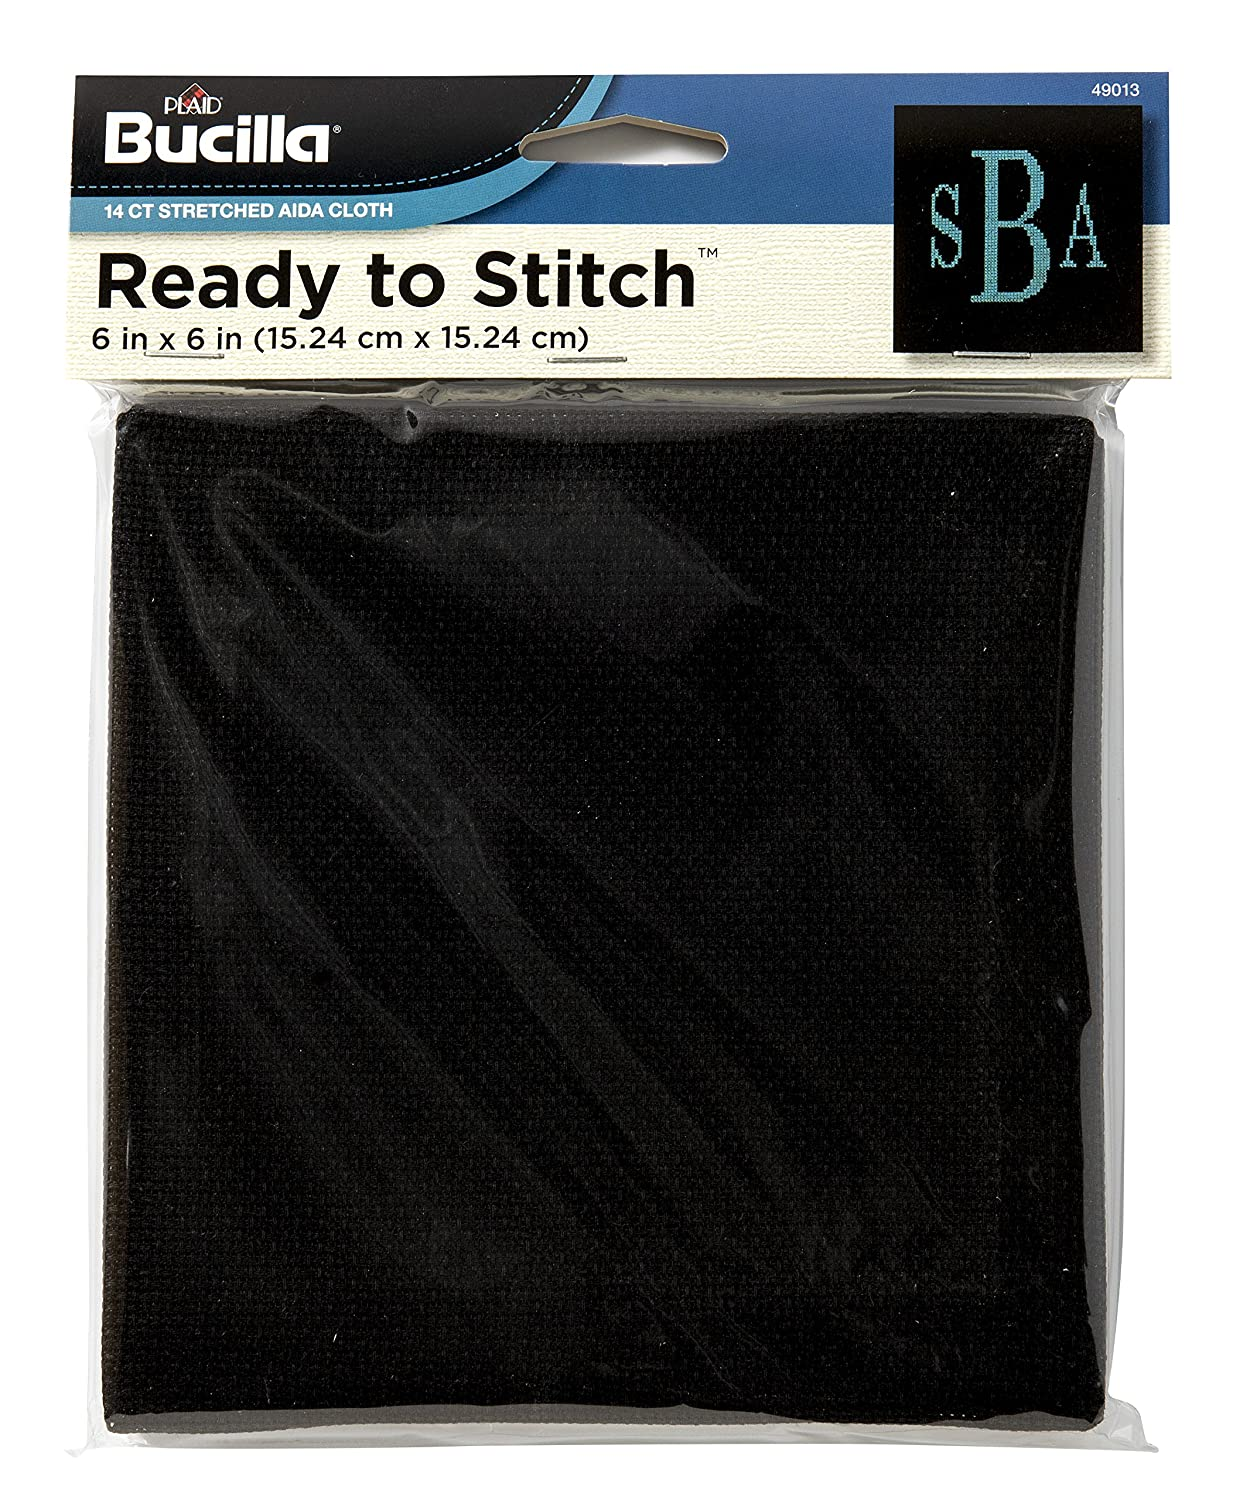 Bucilla Ready To Stitch Aida Cloth, 6 by 6-Inch, 49013 Black Plaid Inc